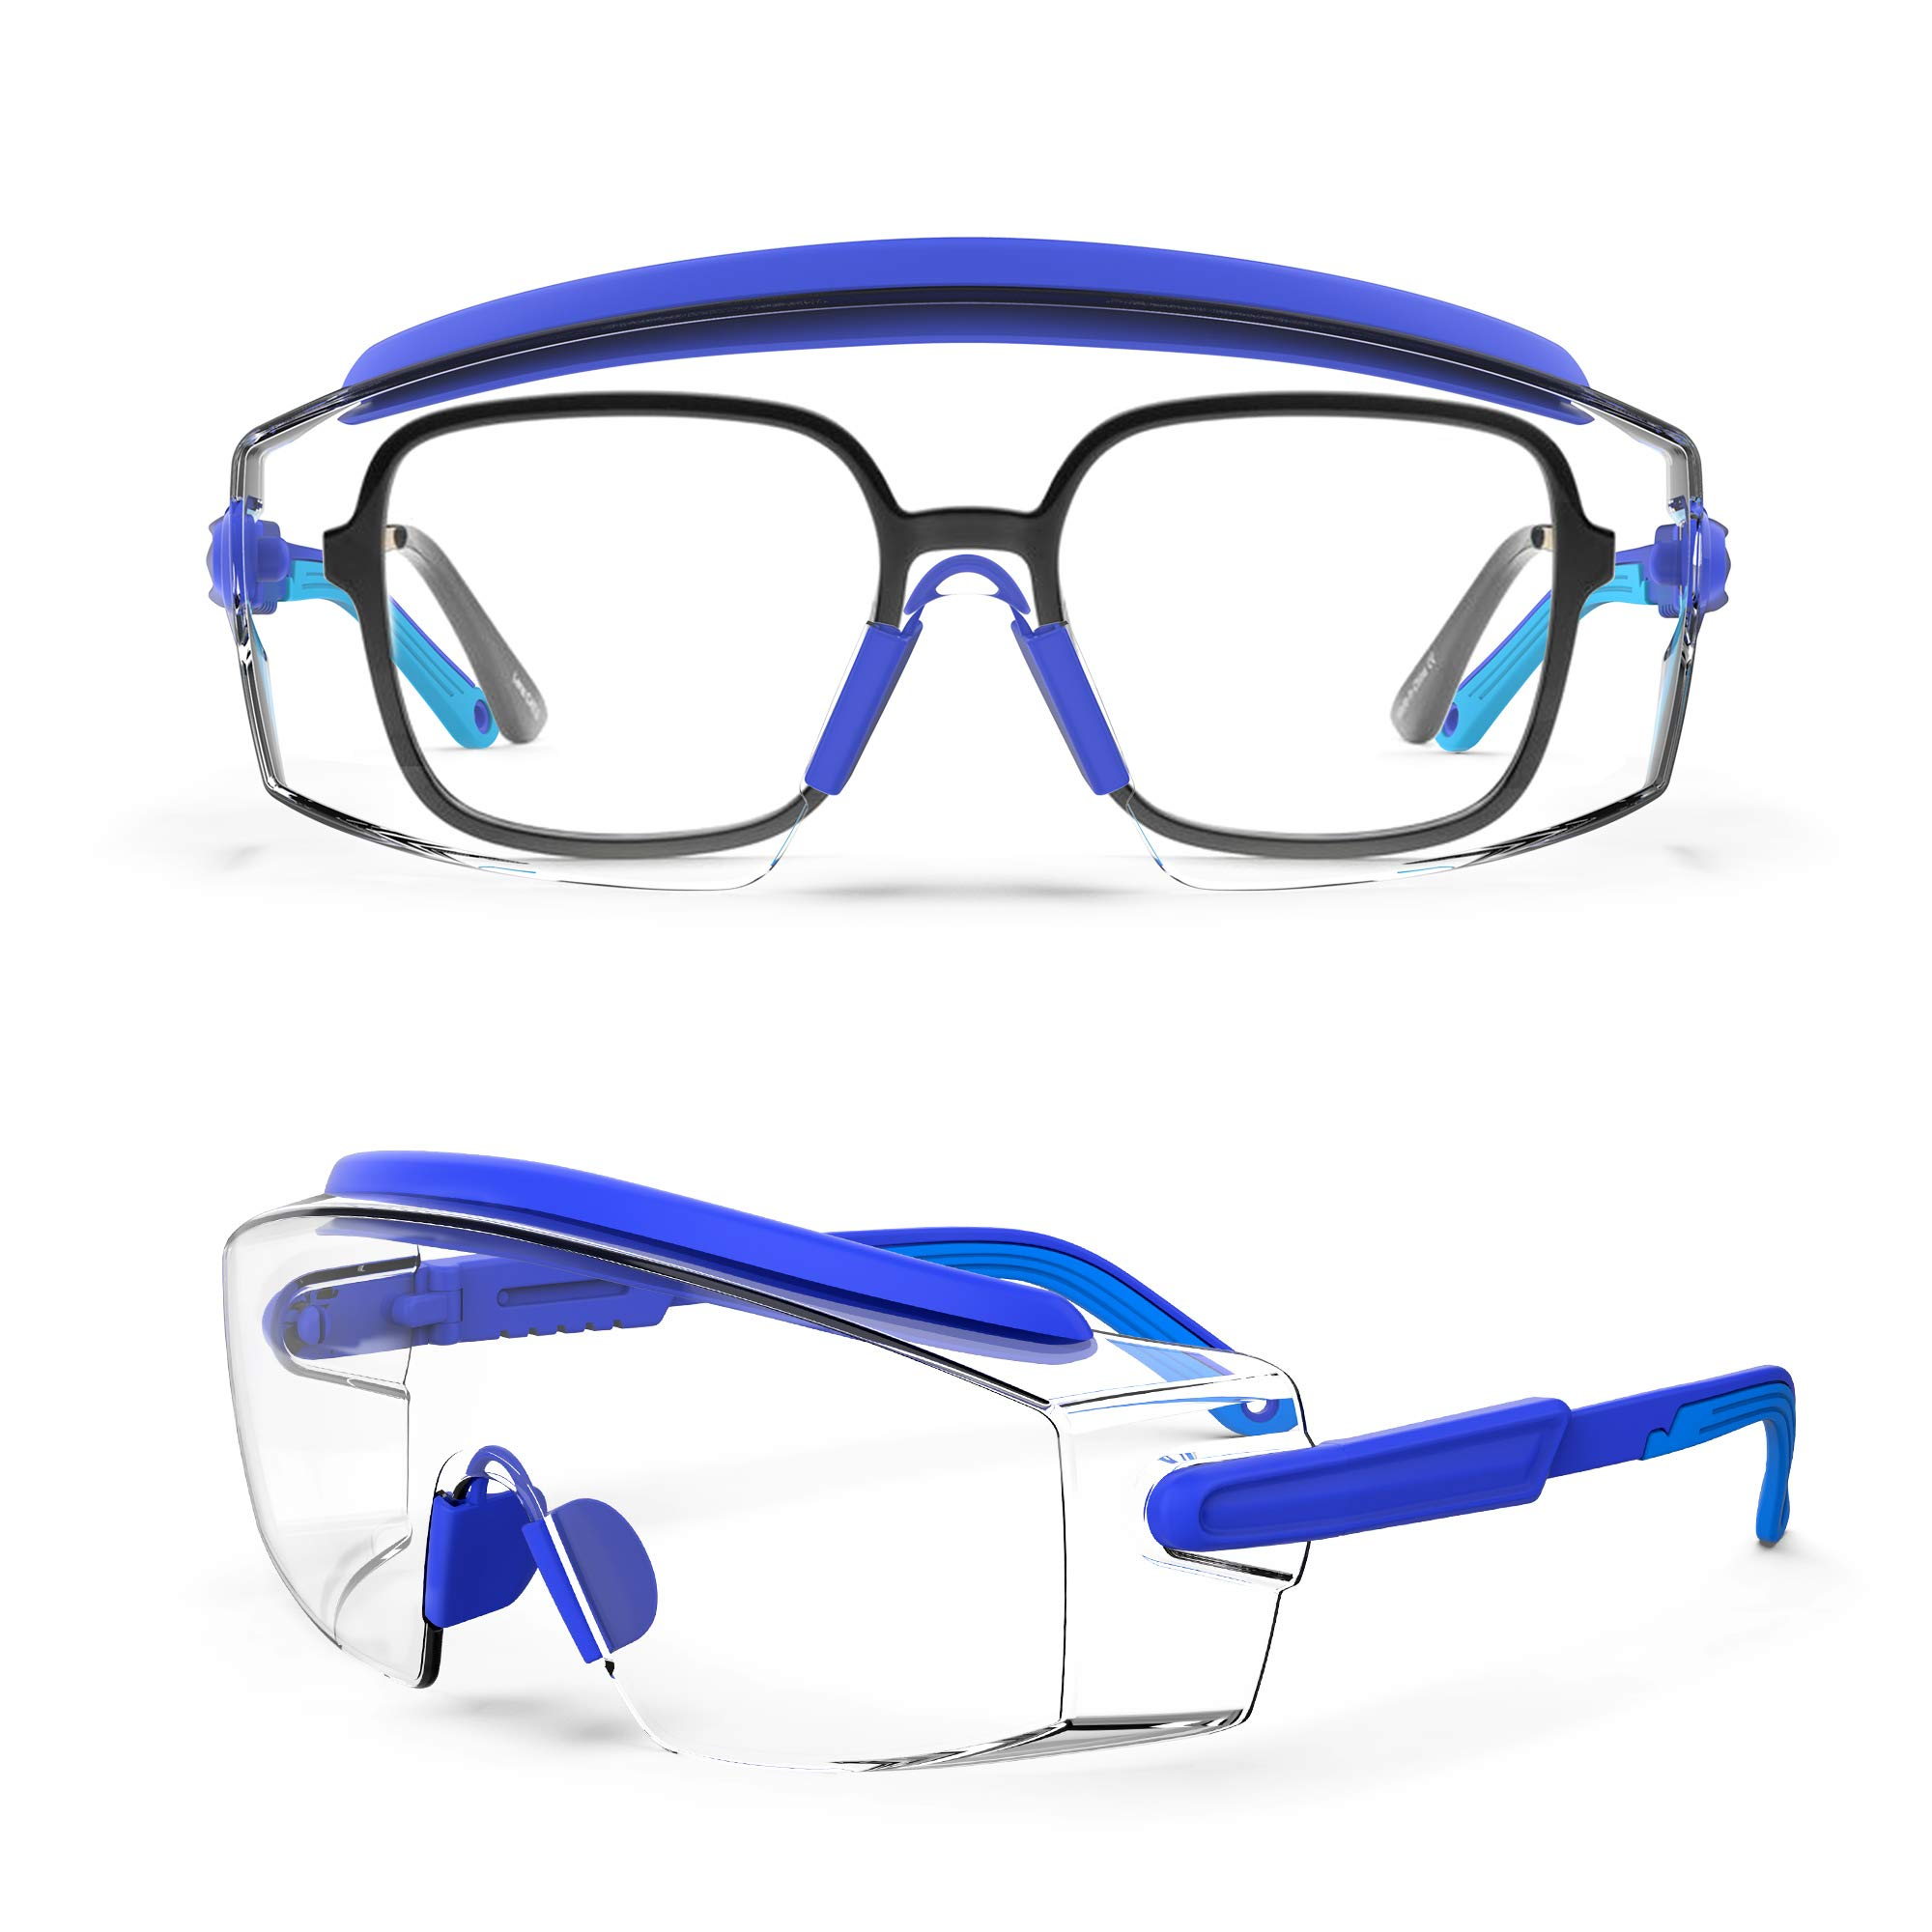 MEIGIX Anti Fog Safety Glasses Safety Goggles Over Glasses Protective Glasses with Anti Scratch Lenses Adjustable Frame And Temples,Clear Glasses,Lab Eyewear Goggles for men /& Women Blue 1 Pair